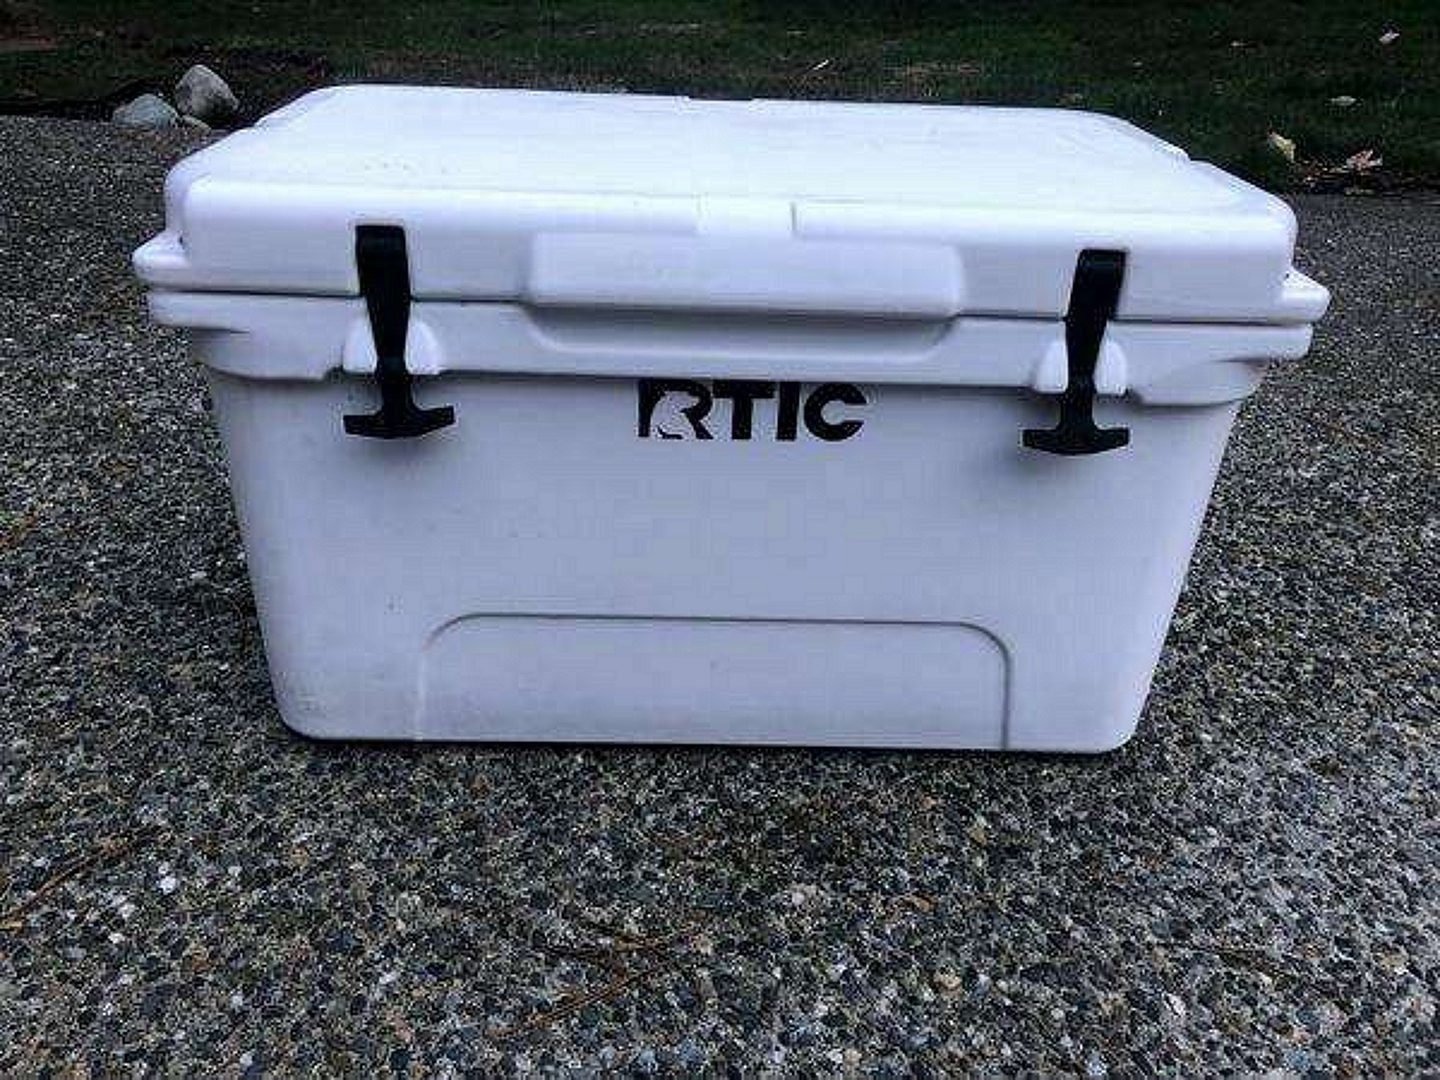 rtic cooler RTIC 45 Review